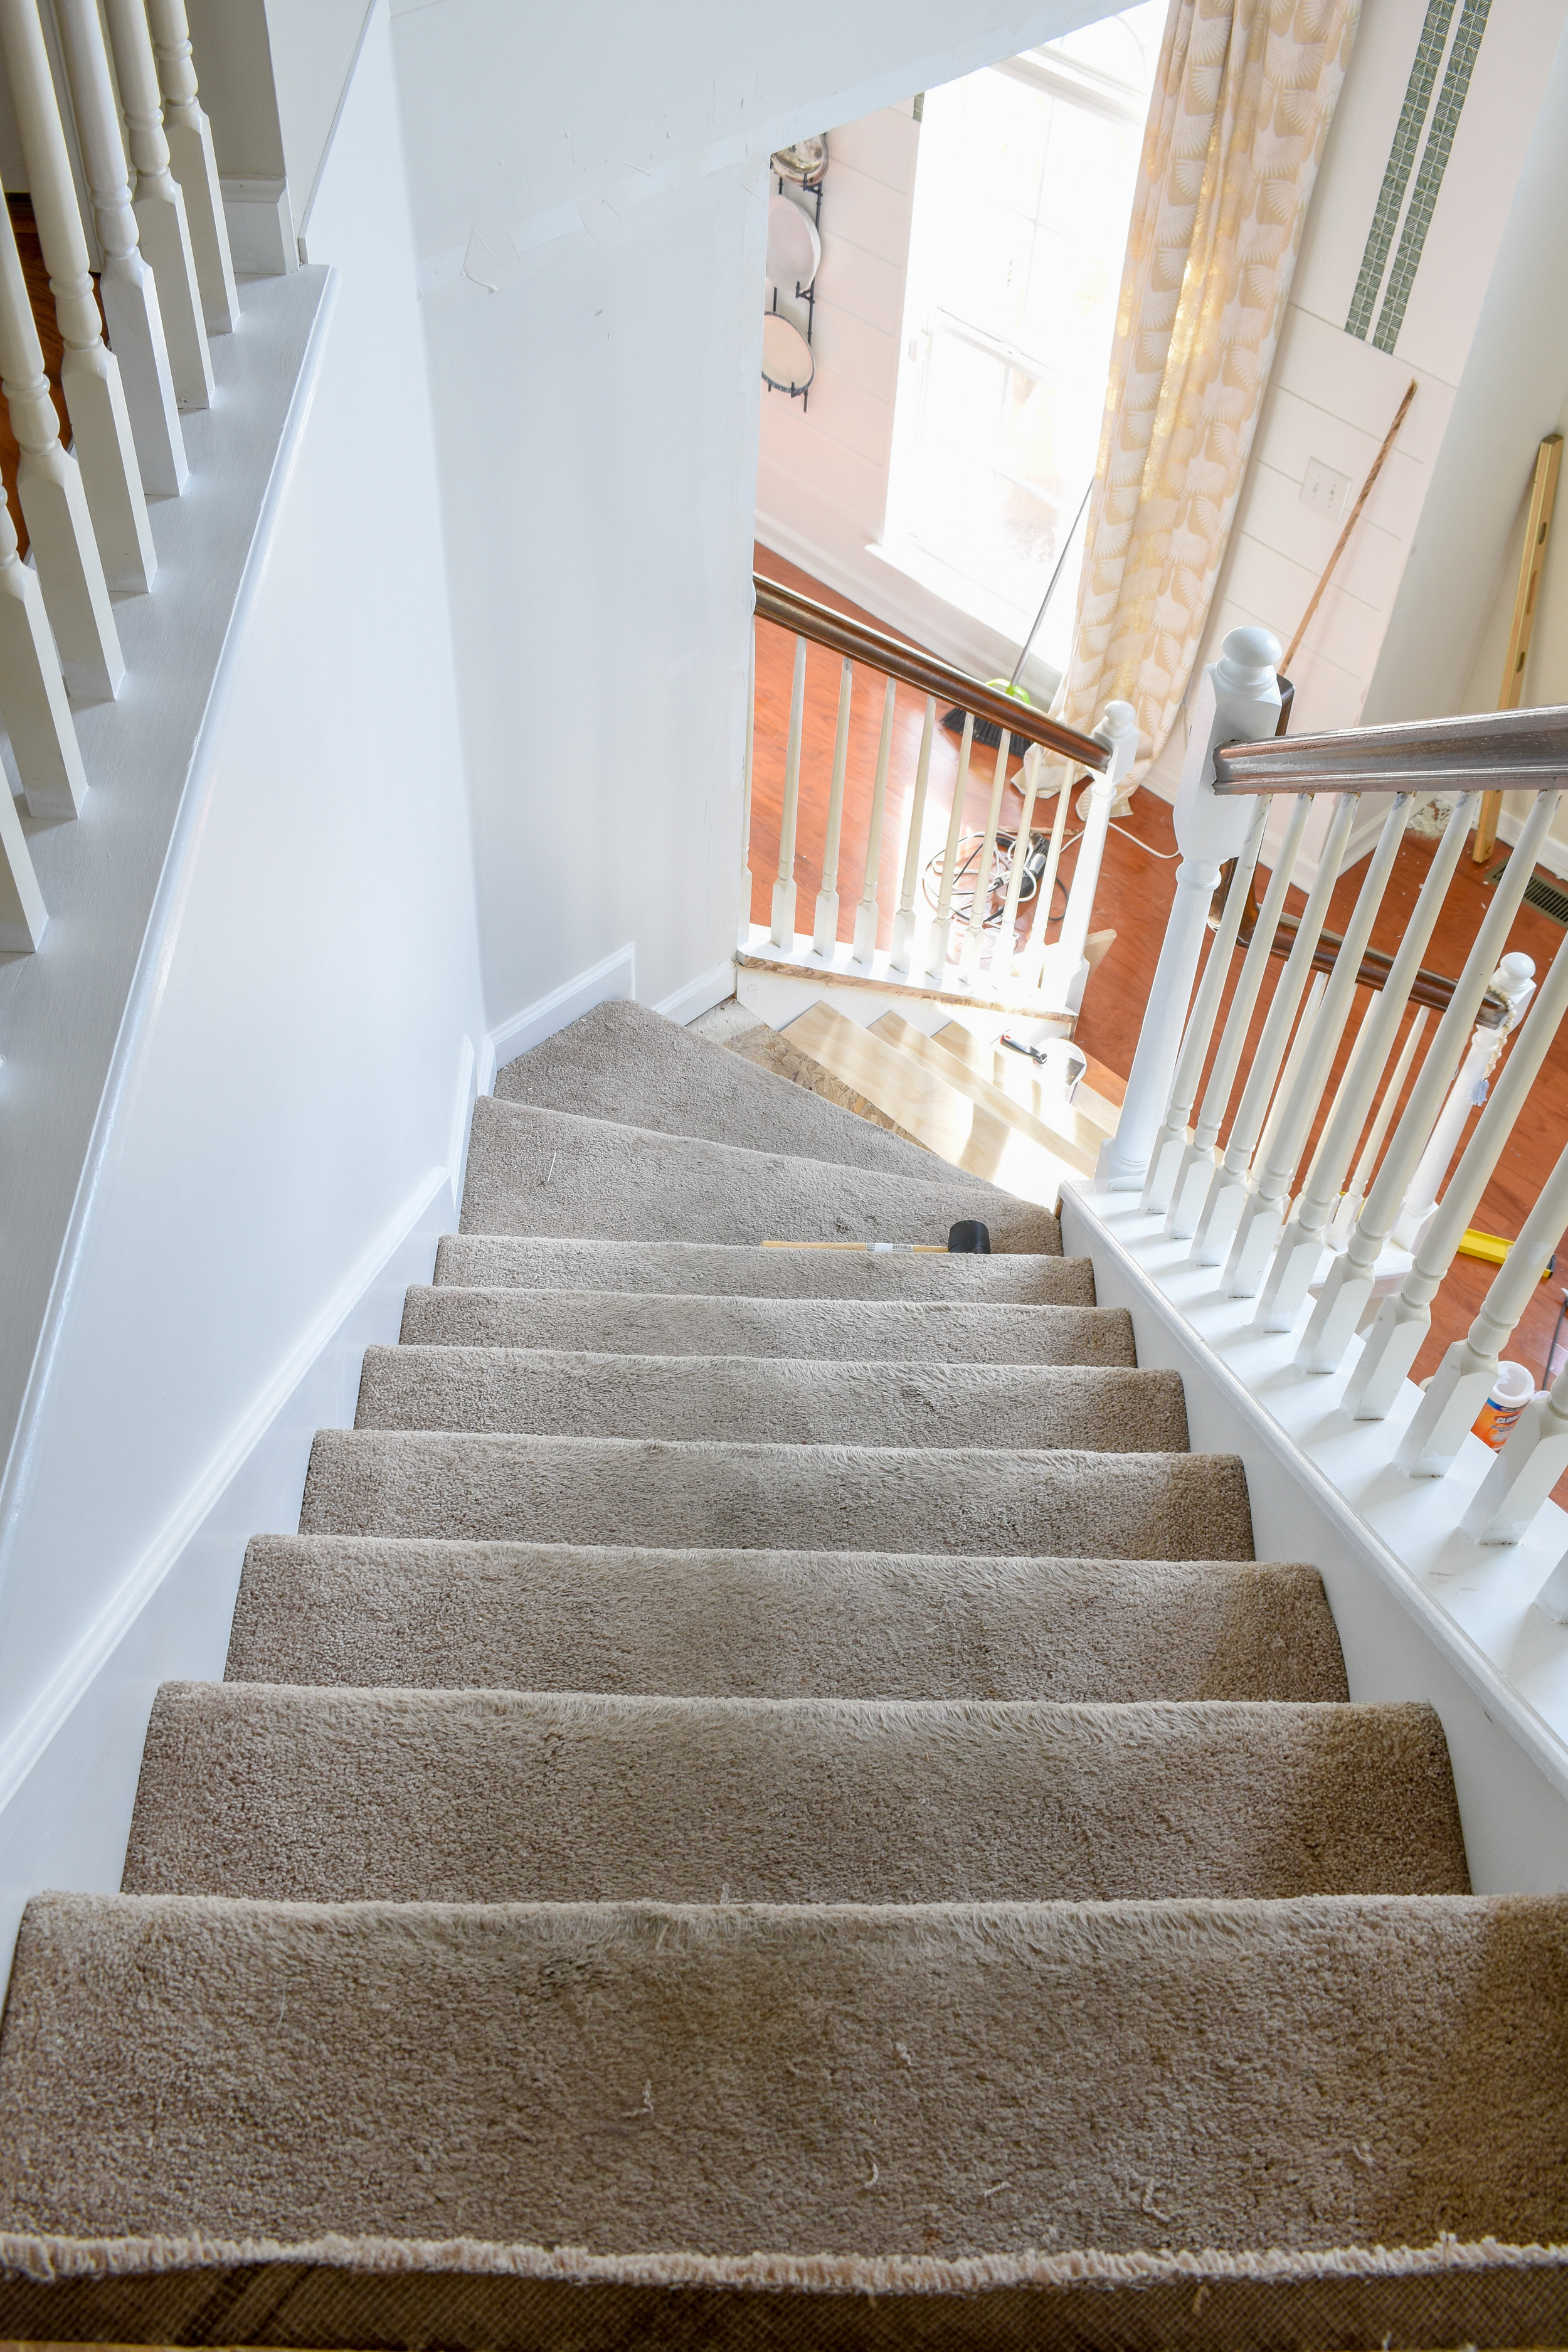 replacing carpeted stairs with hardwood